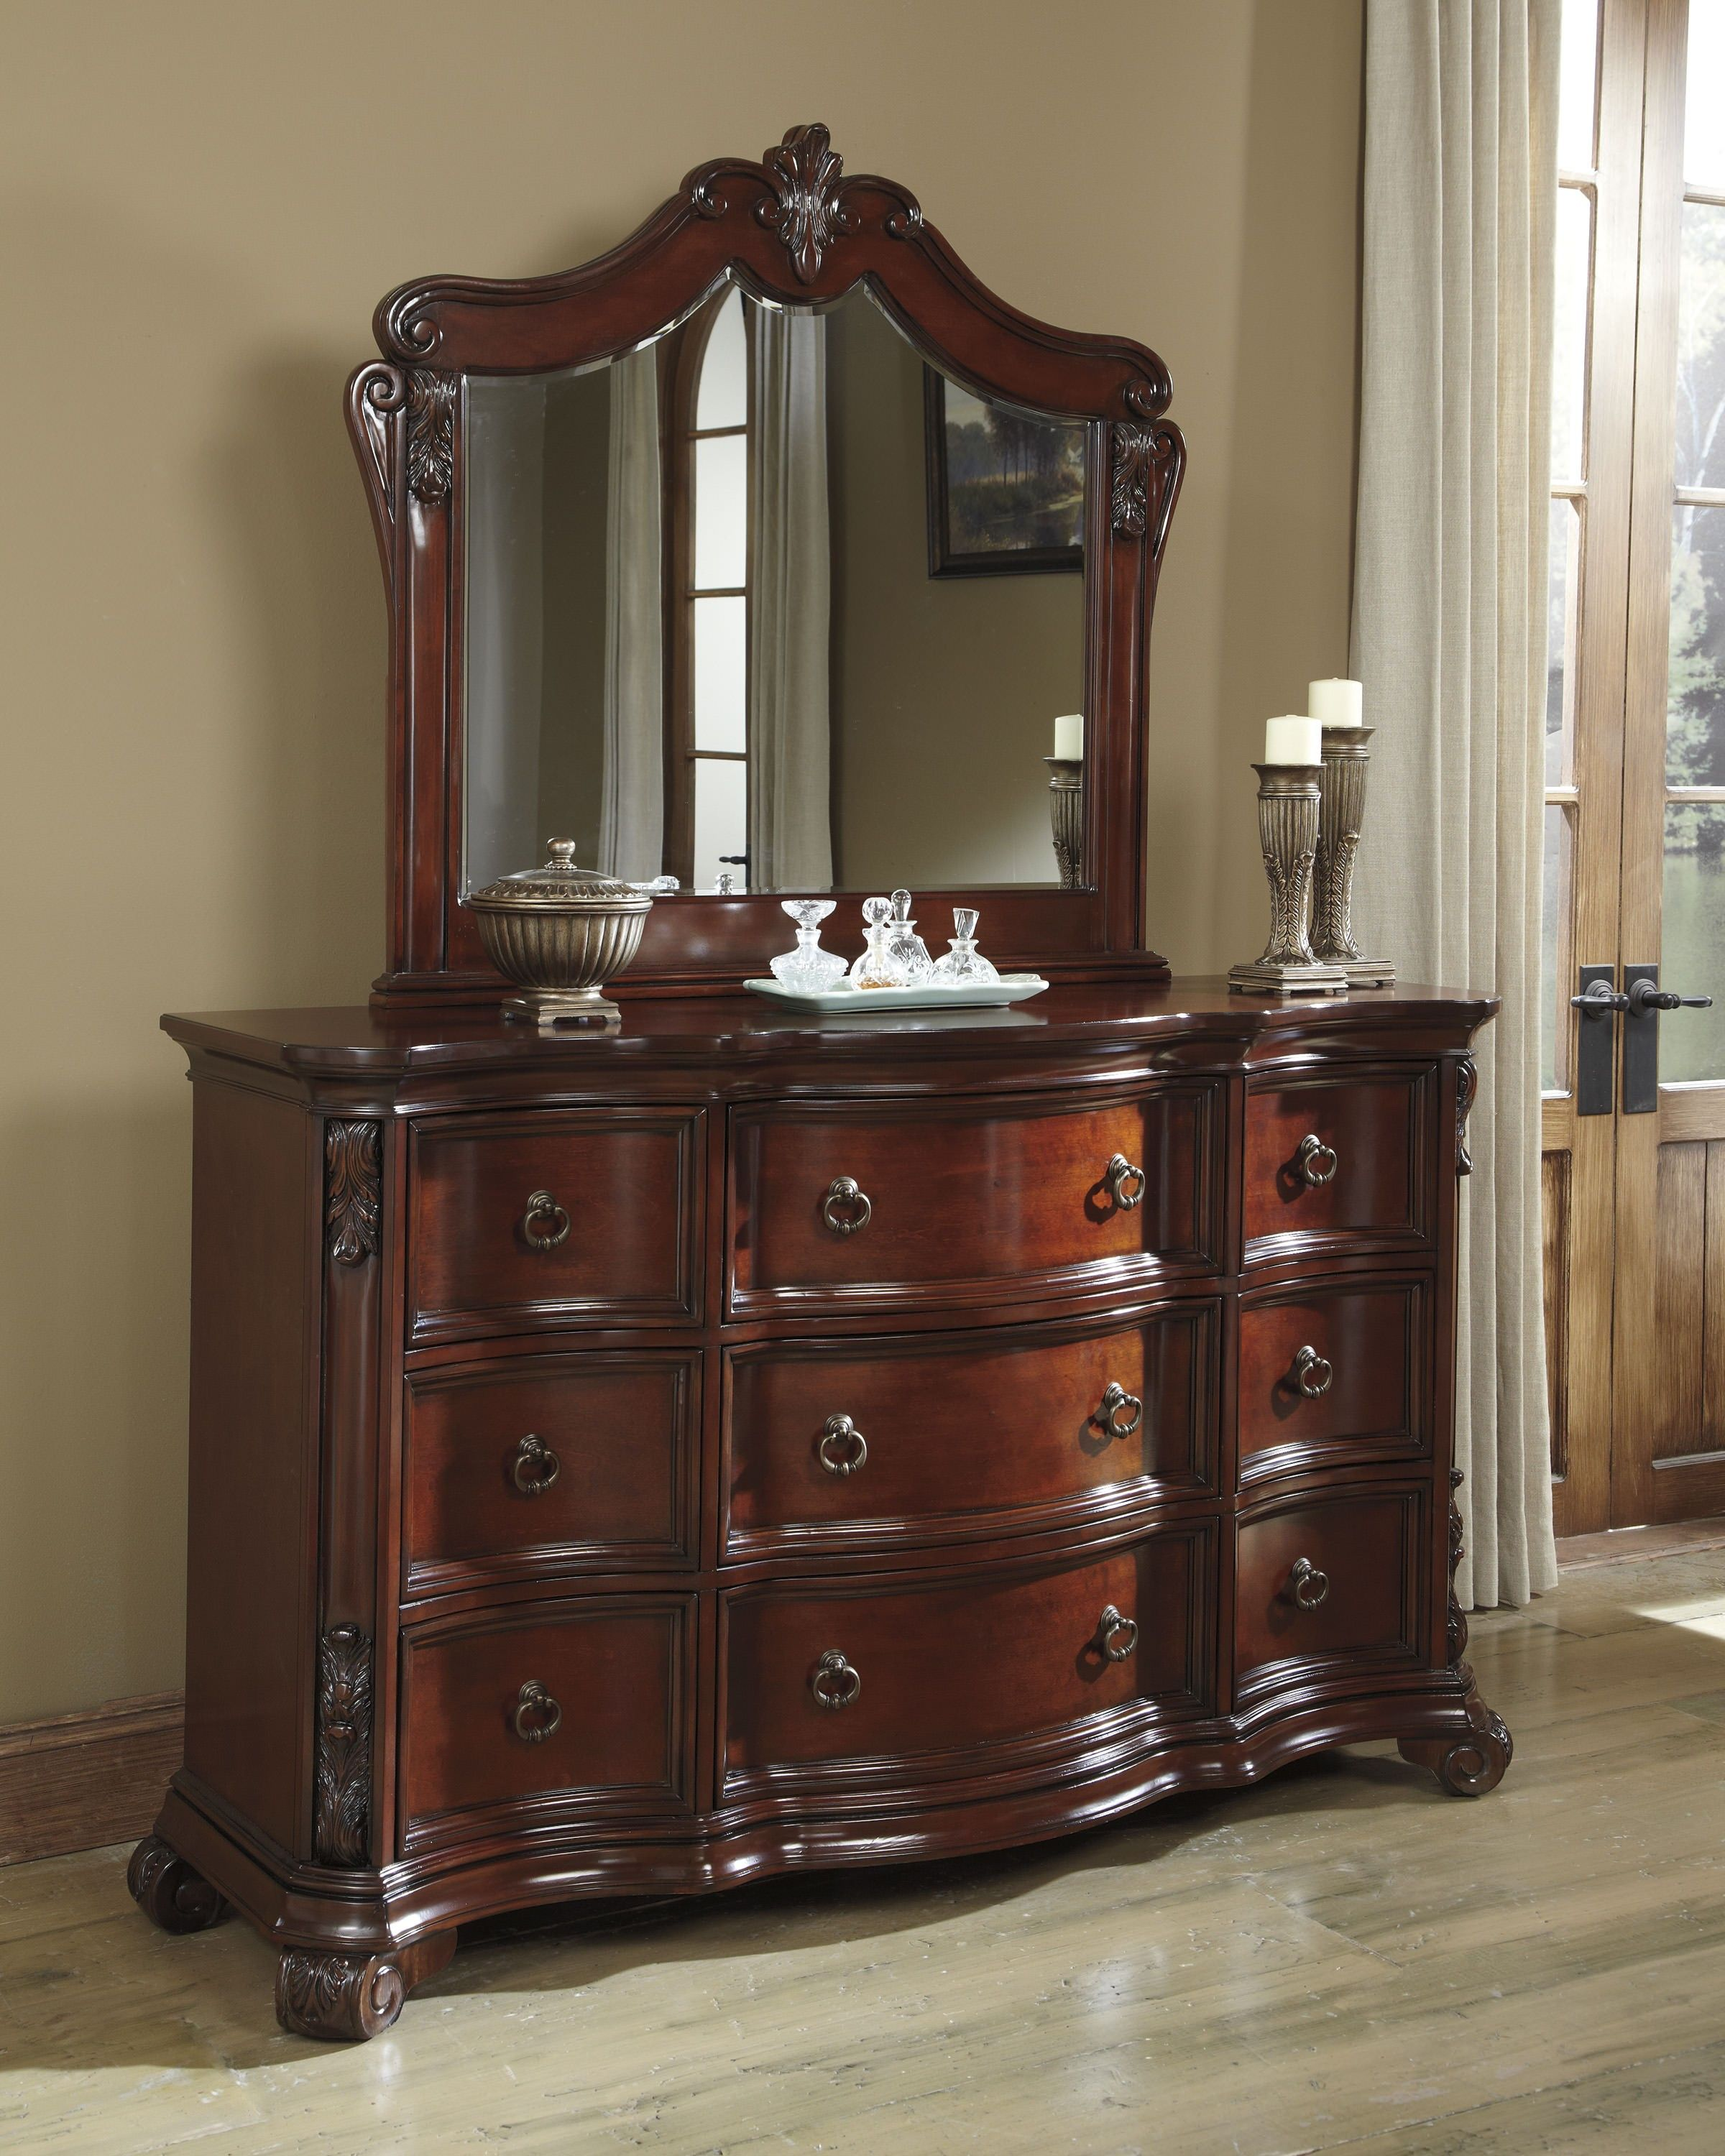 Bedroom Decor: Martanny Dresser by Ashley Furniture at Kensington Furniture.  Regal furniture for an